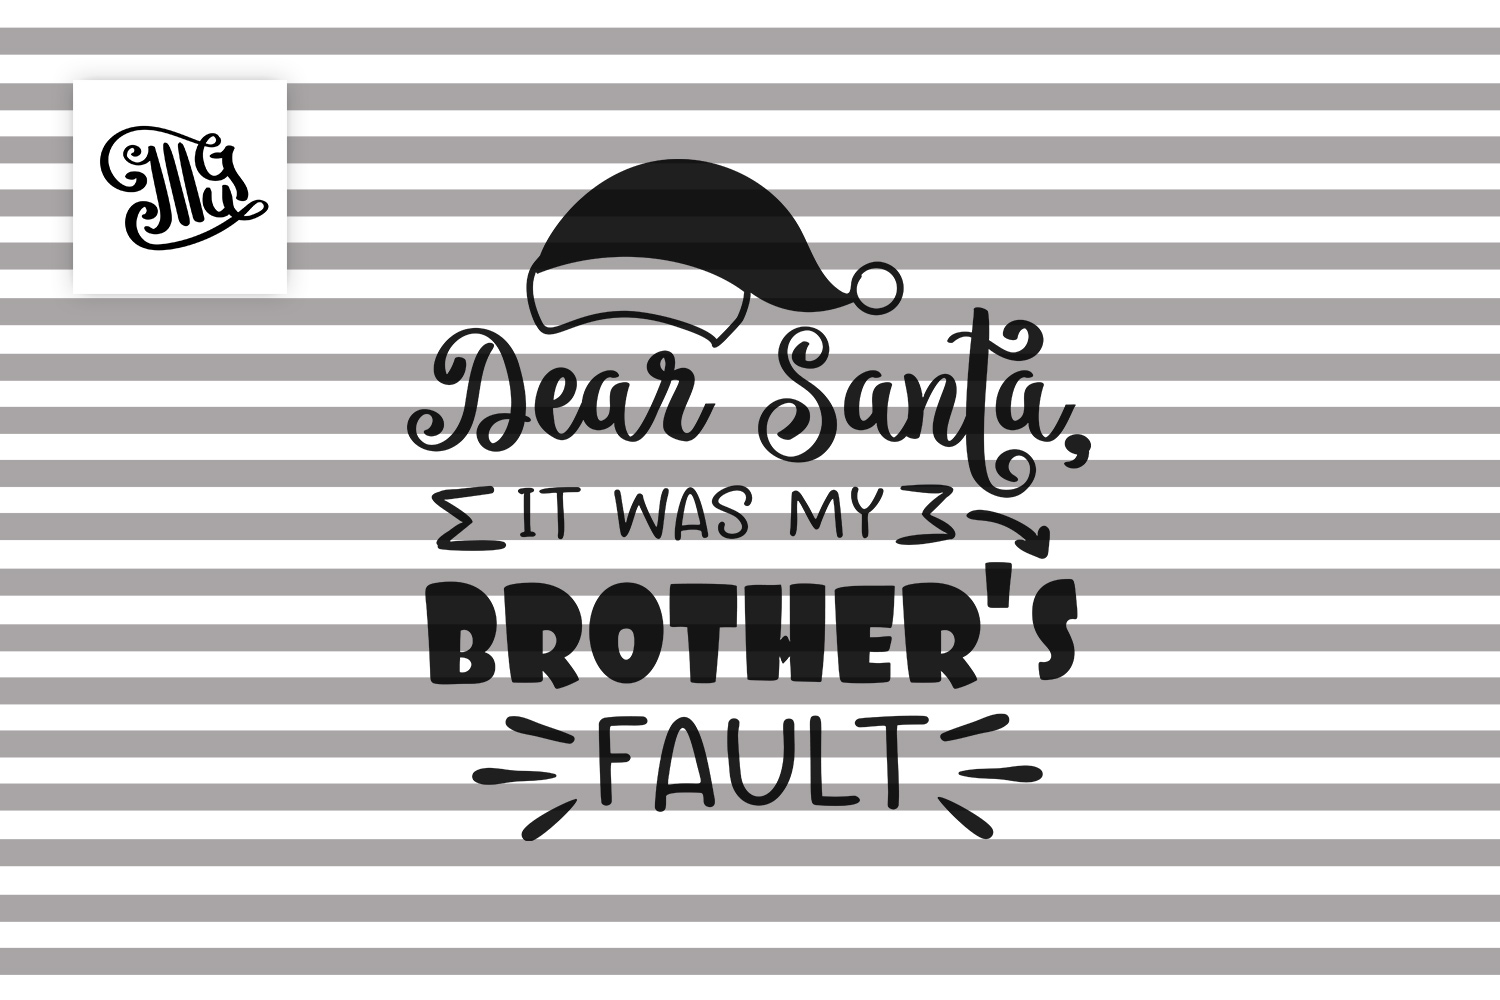 Dear Santa it was my brother's fault - Christmas kids example image 2